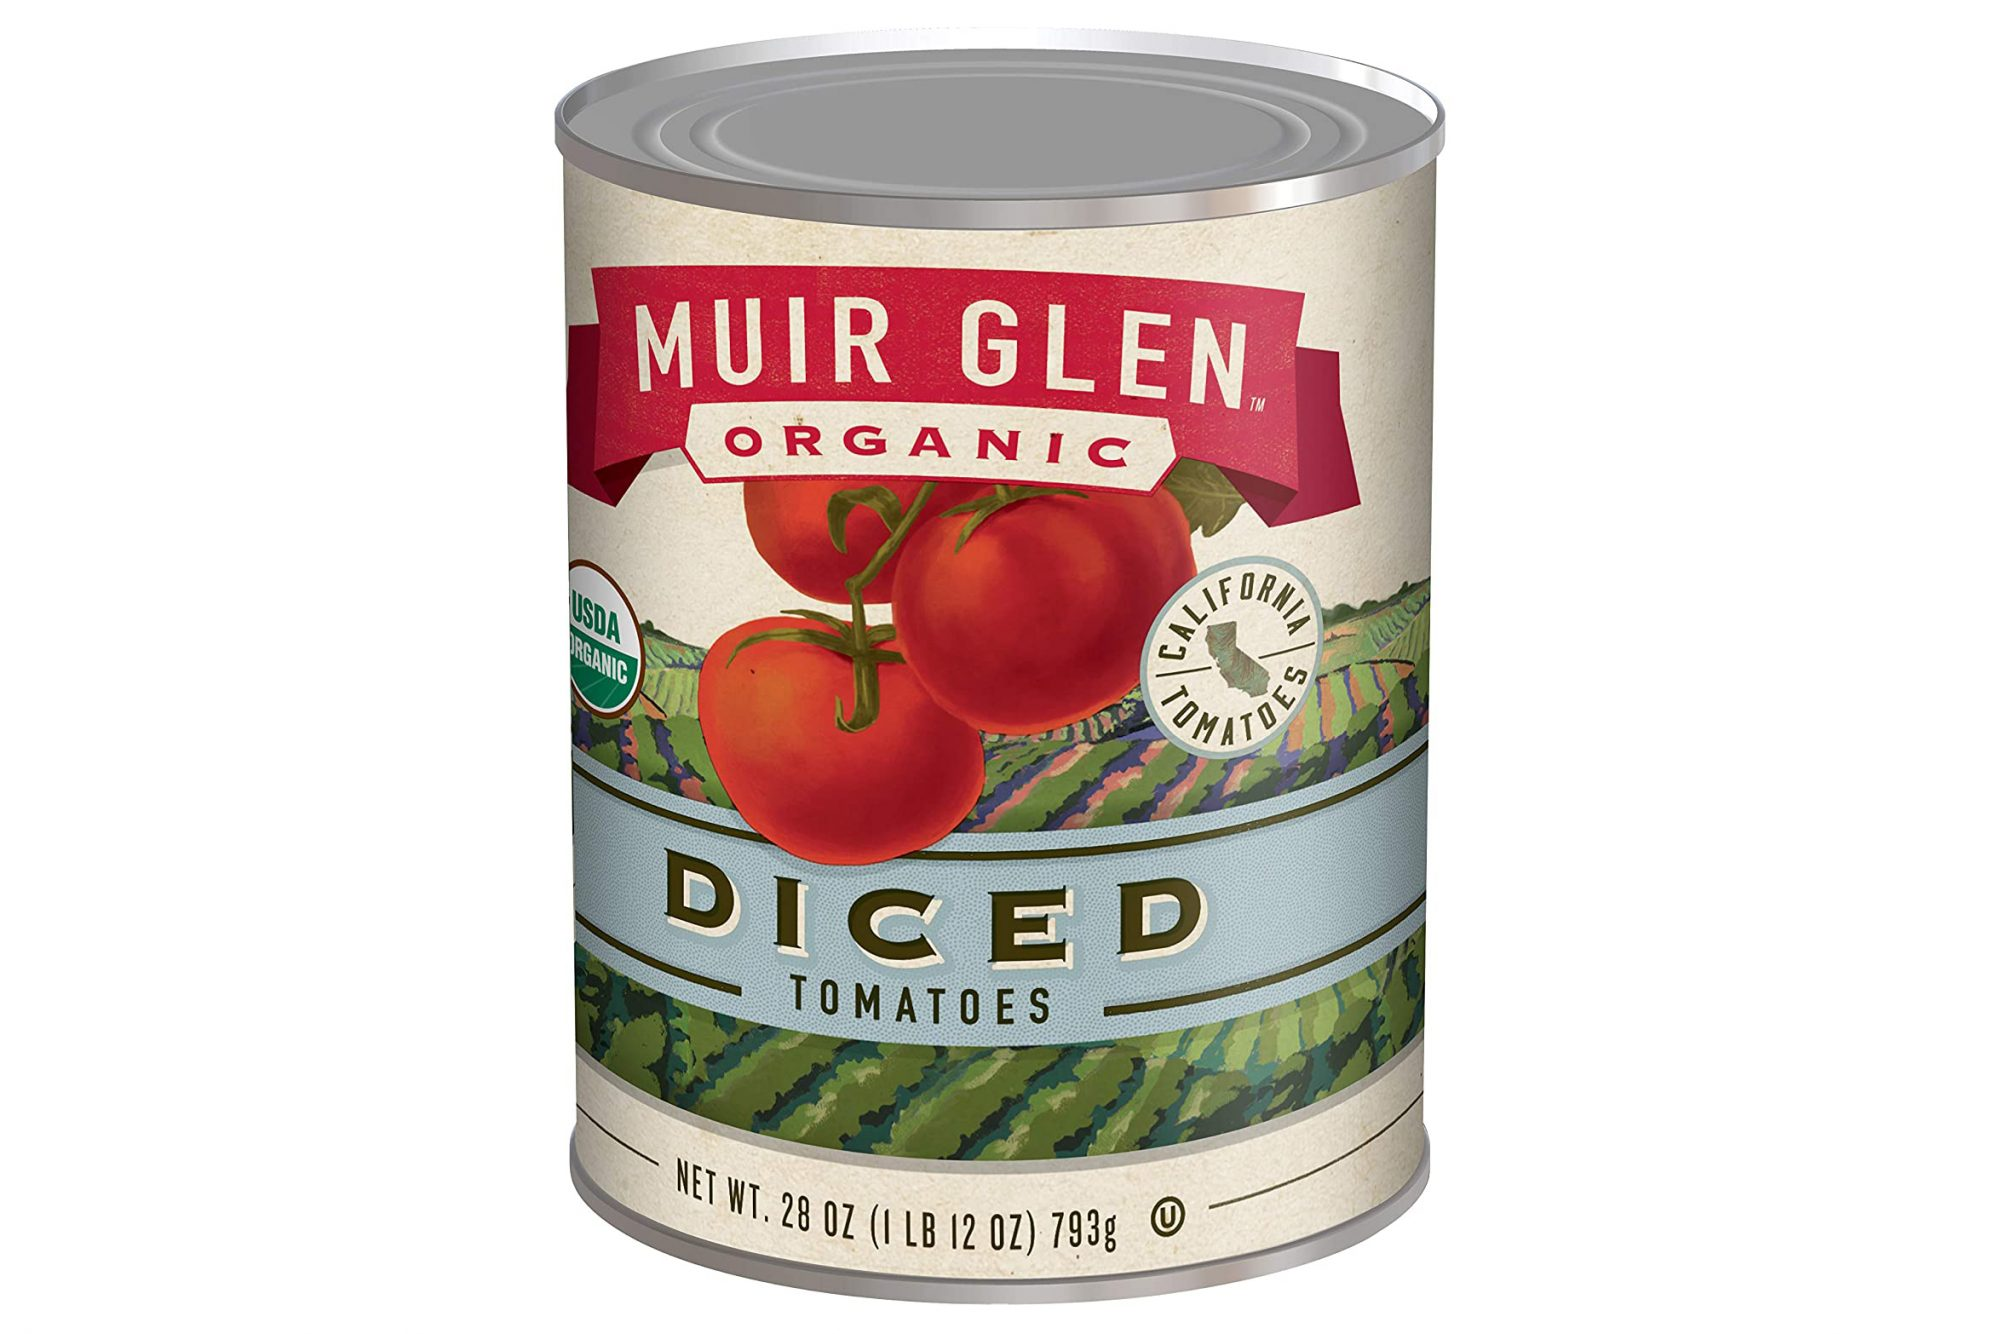 a can of Muir Glen Canned Tomatoes, Organic Diced Tomatoes on a white background